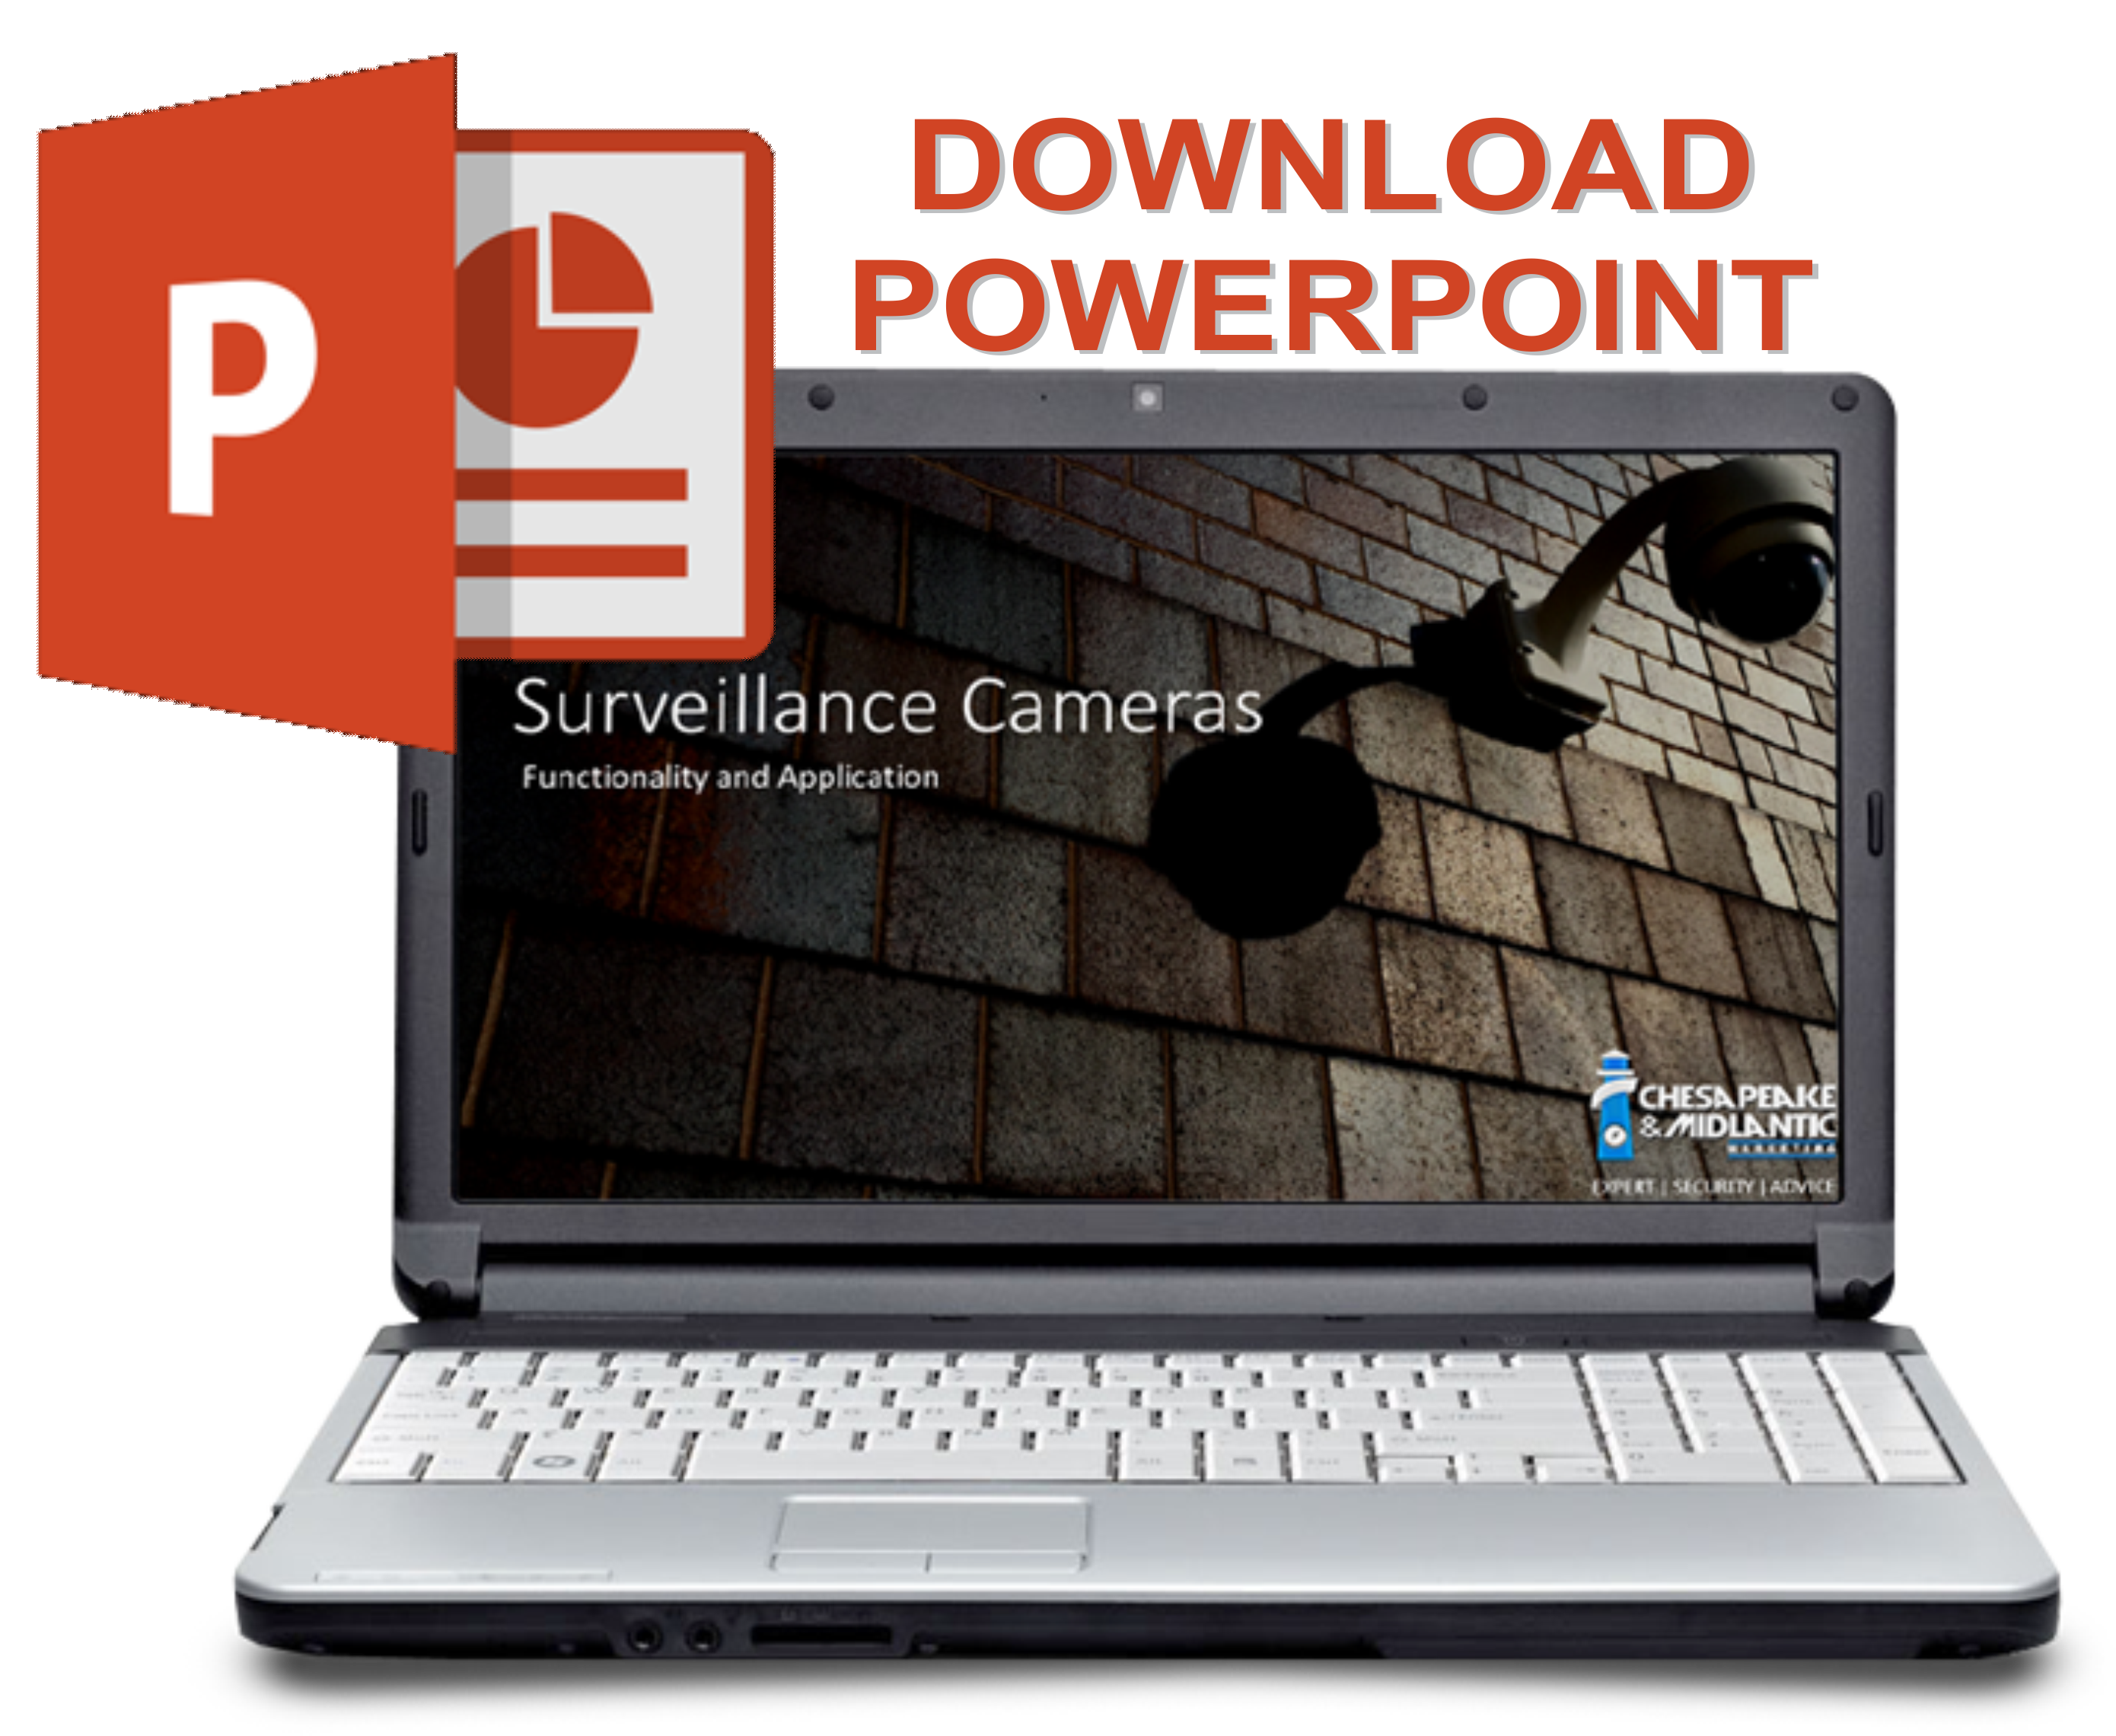 Security Camera Functionality and Application notebook image 2.png